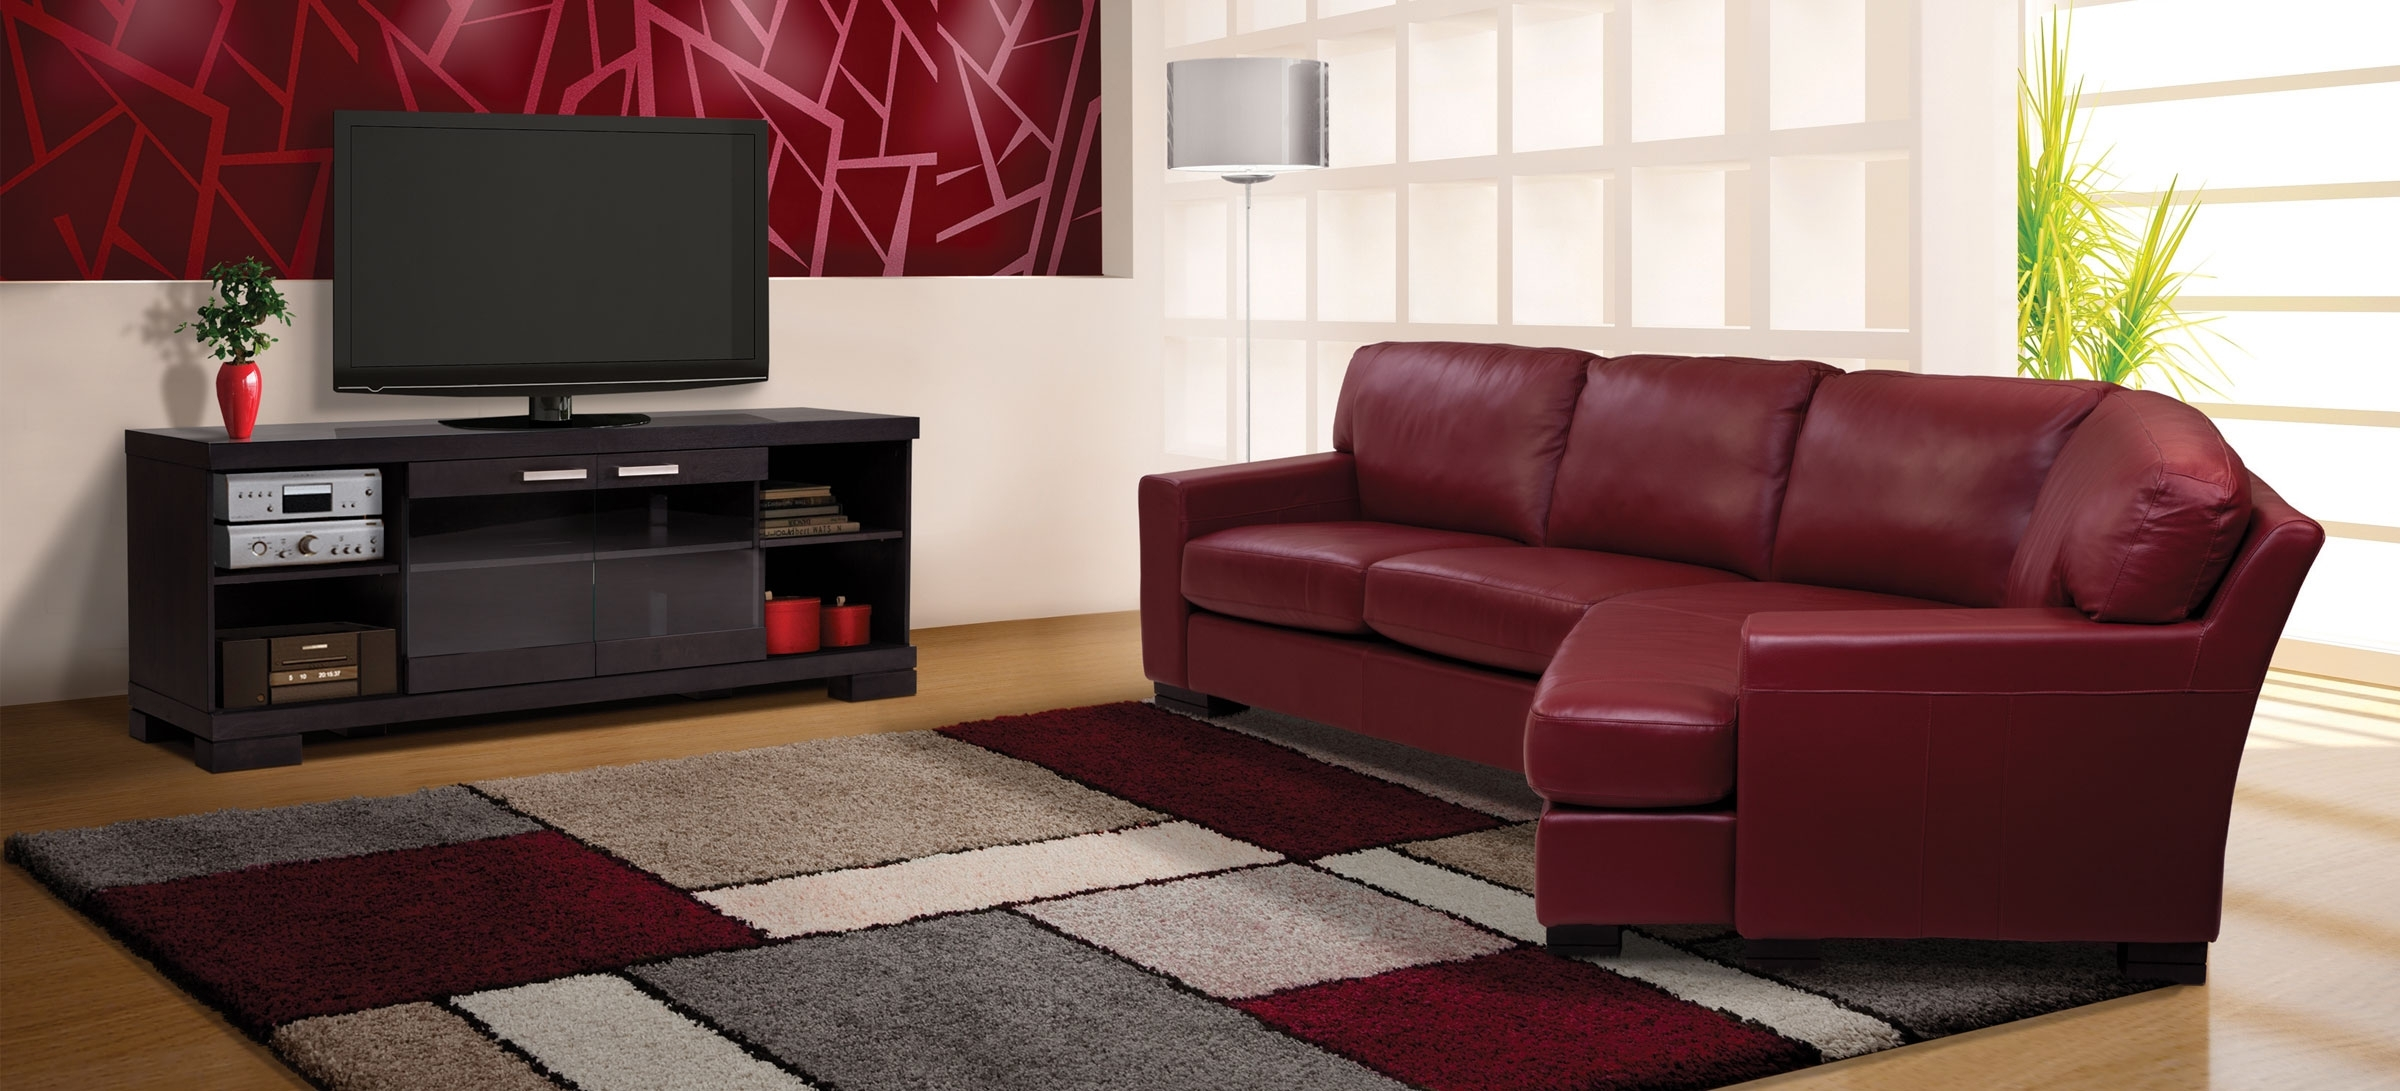 Popular Sectional Sofas For Condos Intended For Apartment Sofa Condo – Contemporary Style – Jaymar Collection (View 14 of 20)